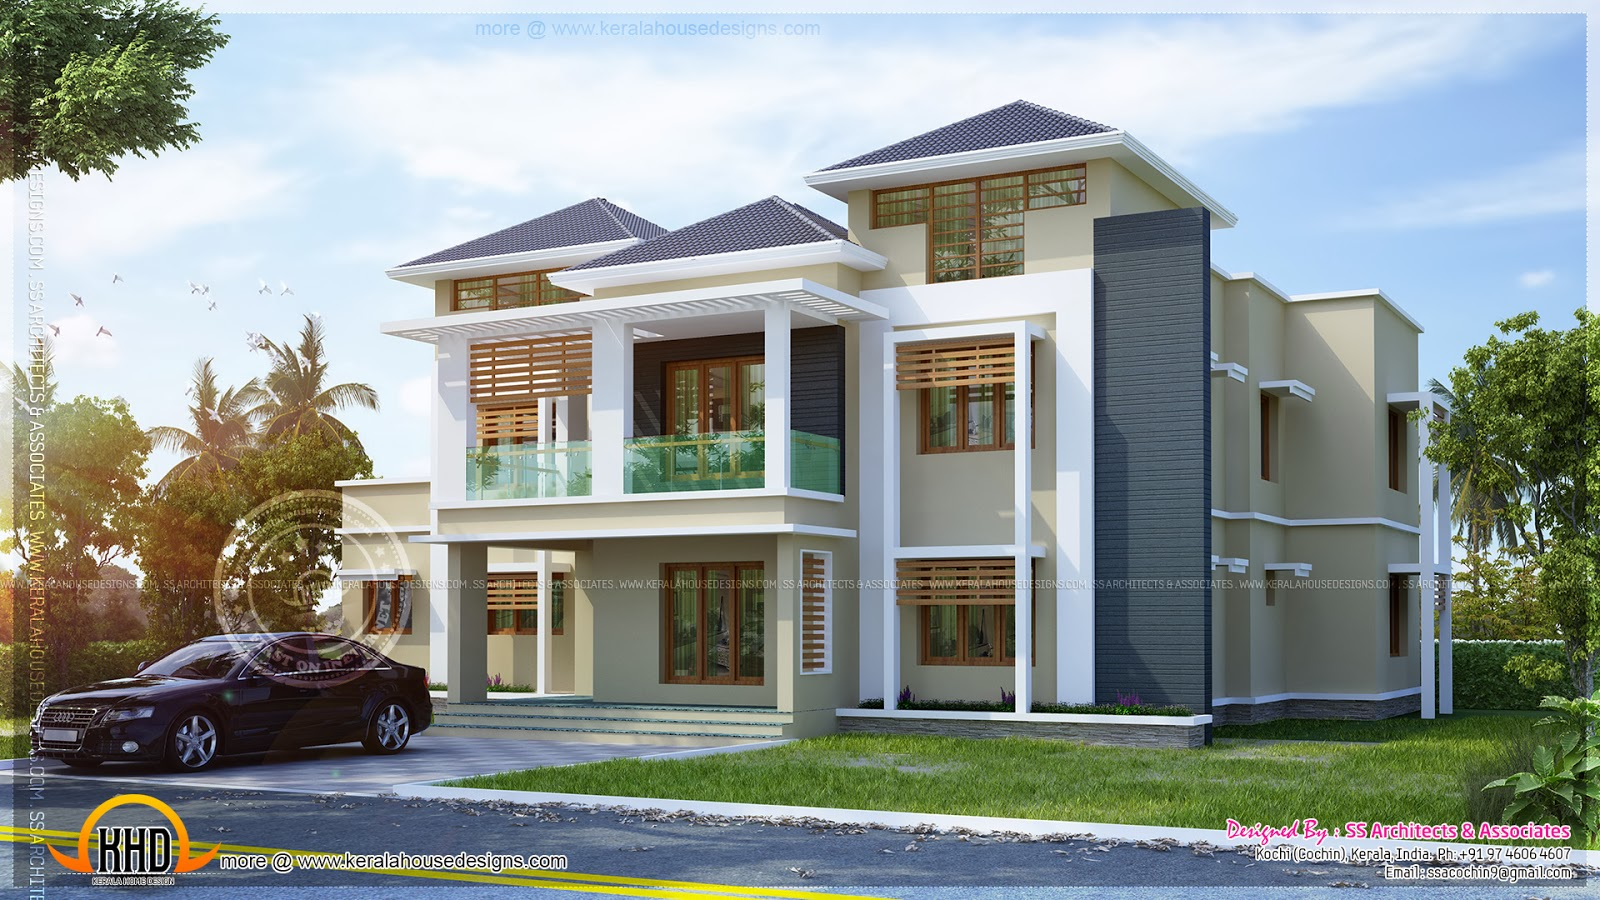 Awesome house plan kerala home design and floor plans for Awesome home designs